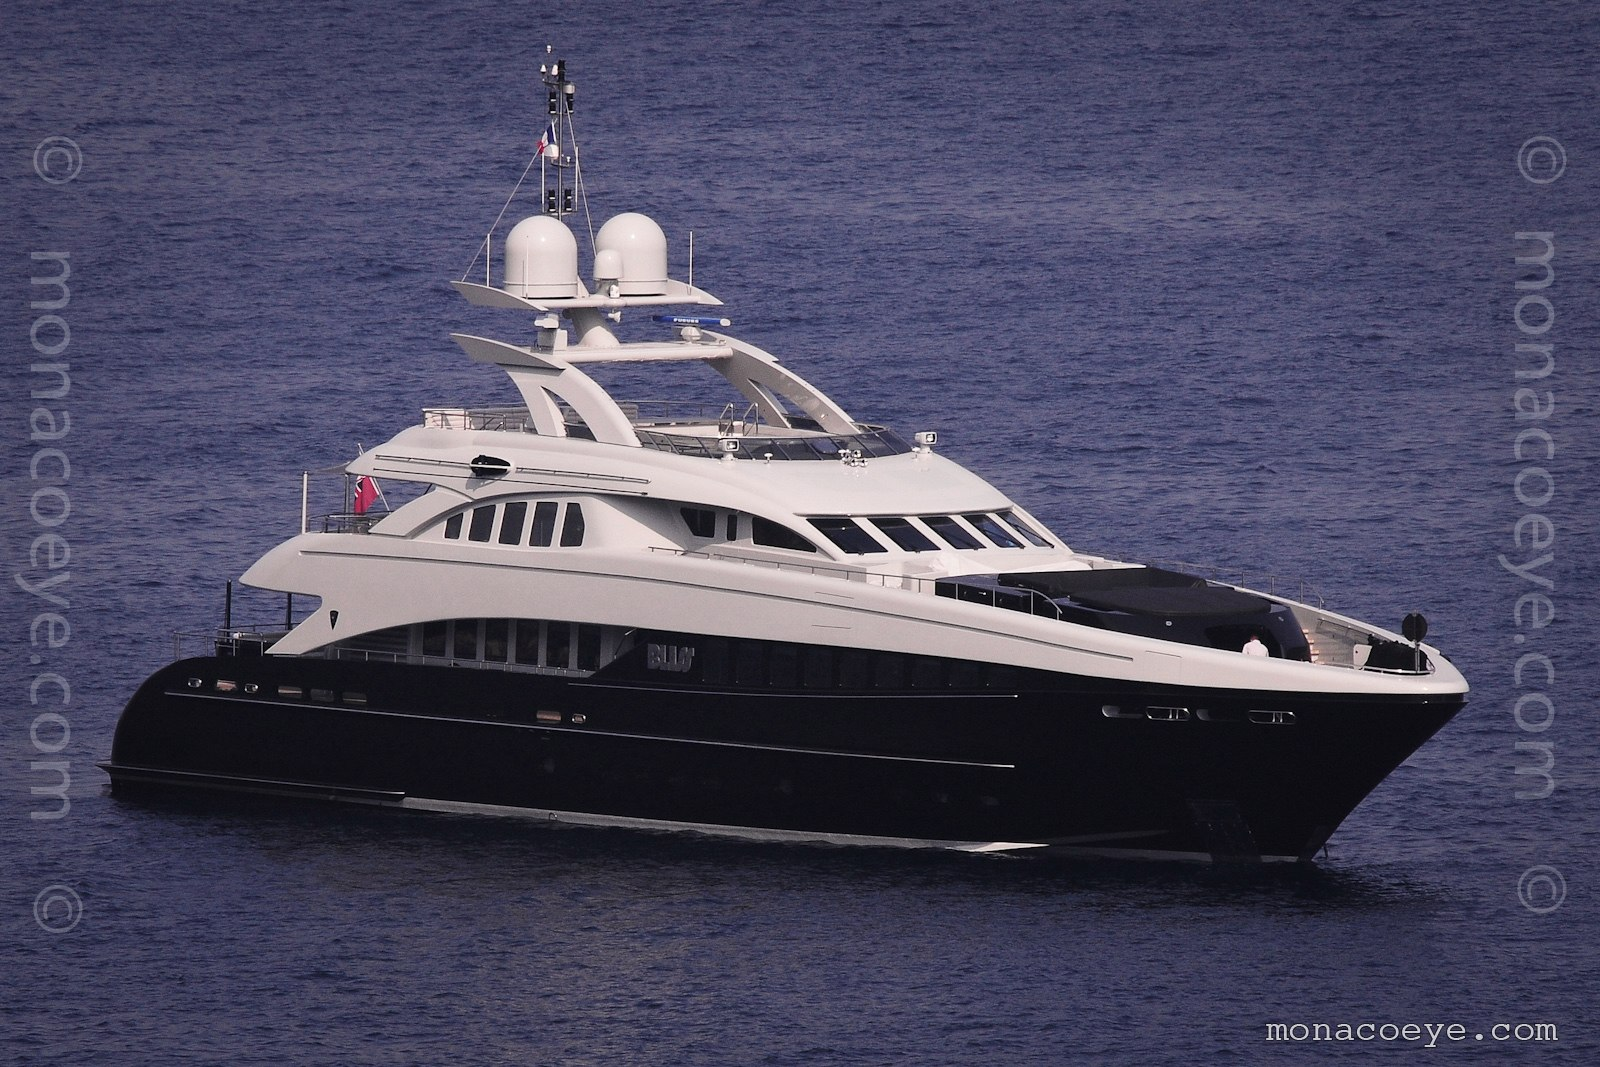 Bliss, yacht from Heesen. Build number 13844, 2007, 44 metres. Ex 101